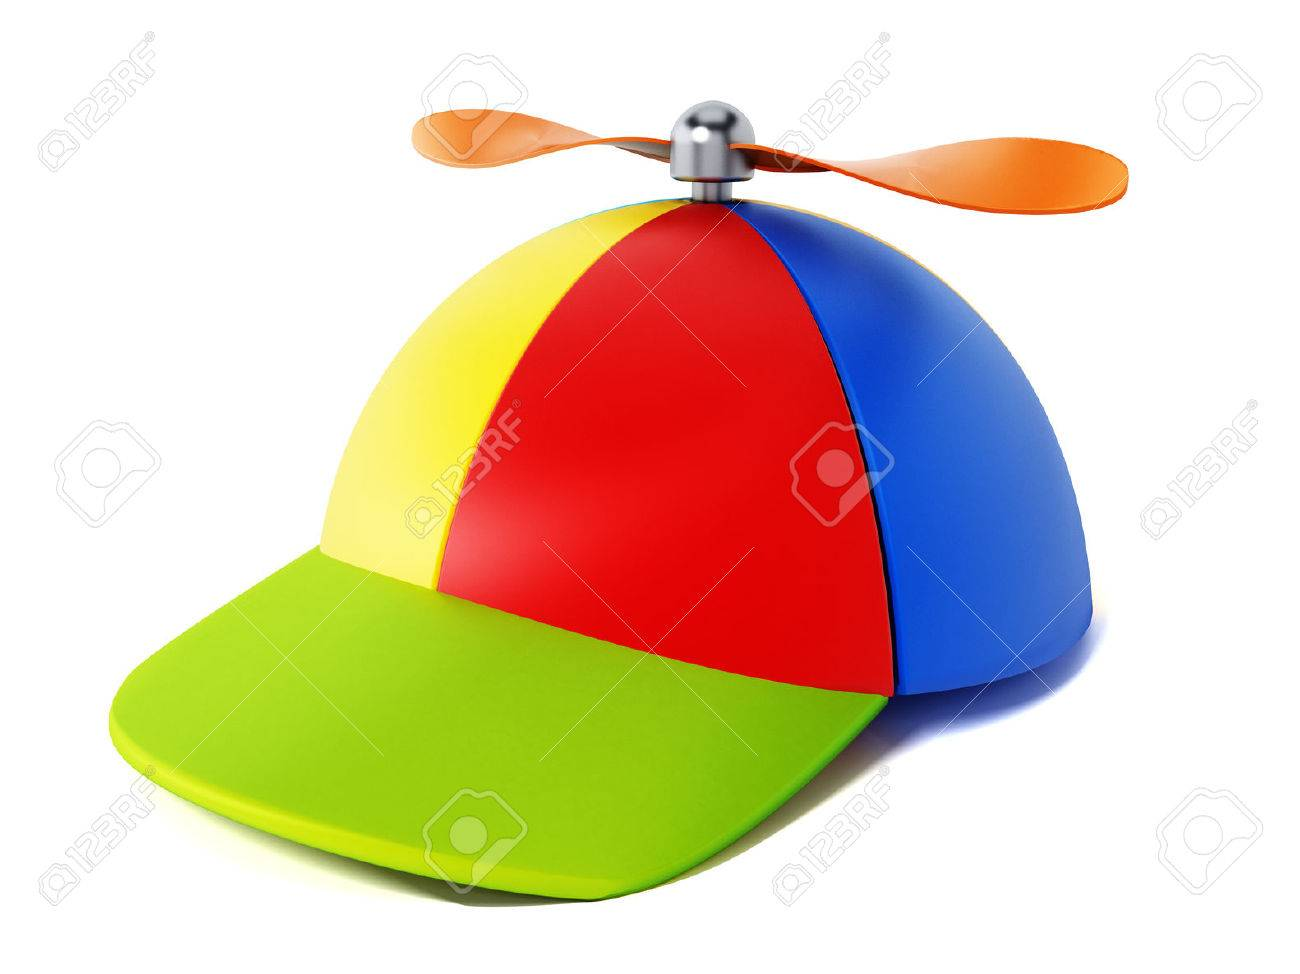 6de6a83eeec Illustration - Multi colored hat with propeller isolated on white  background. 3D illustration.